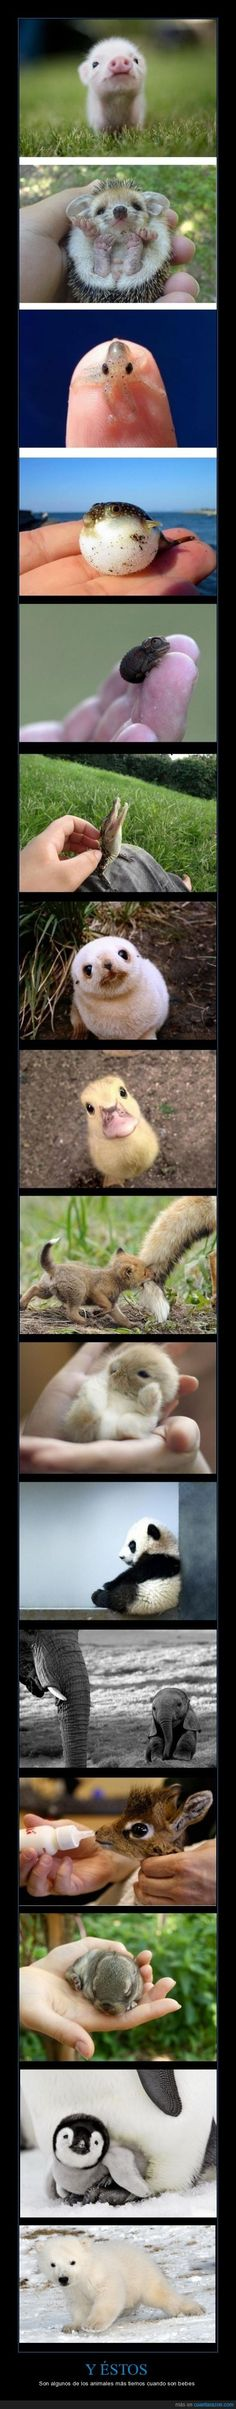 Baby animals are cute Super Cute Animals, Cute Little Animals, Cute Funny Animals, Cute Dogs, Adorable Babies, Cute Animal Pictures, Cute Creatures, Animal Memes, Animals Beautiful